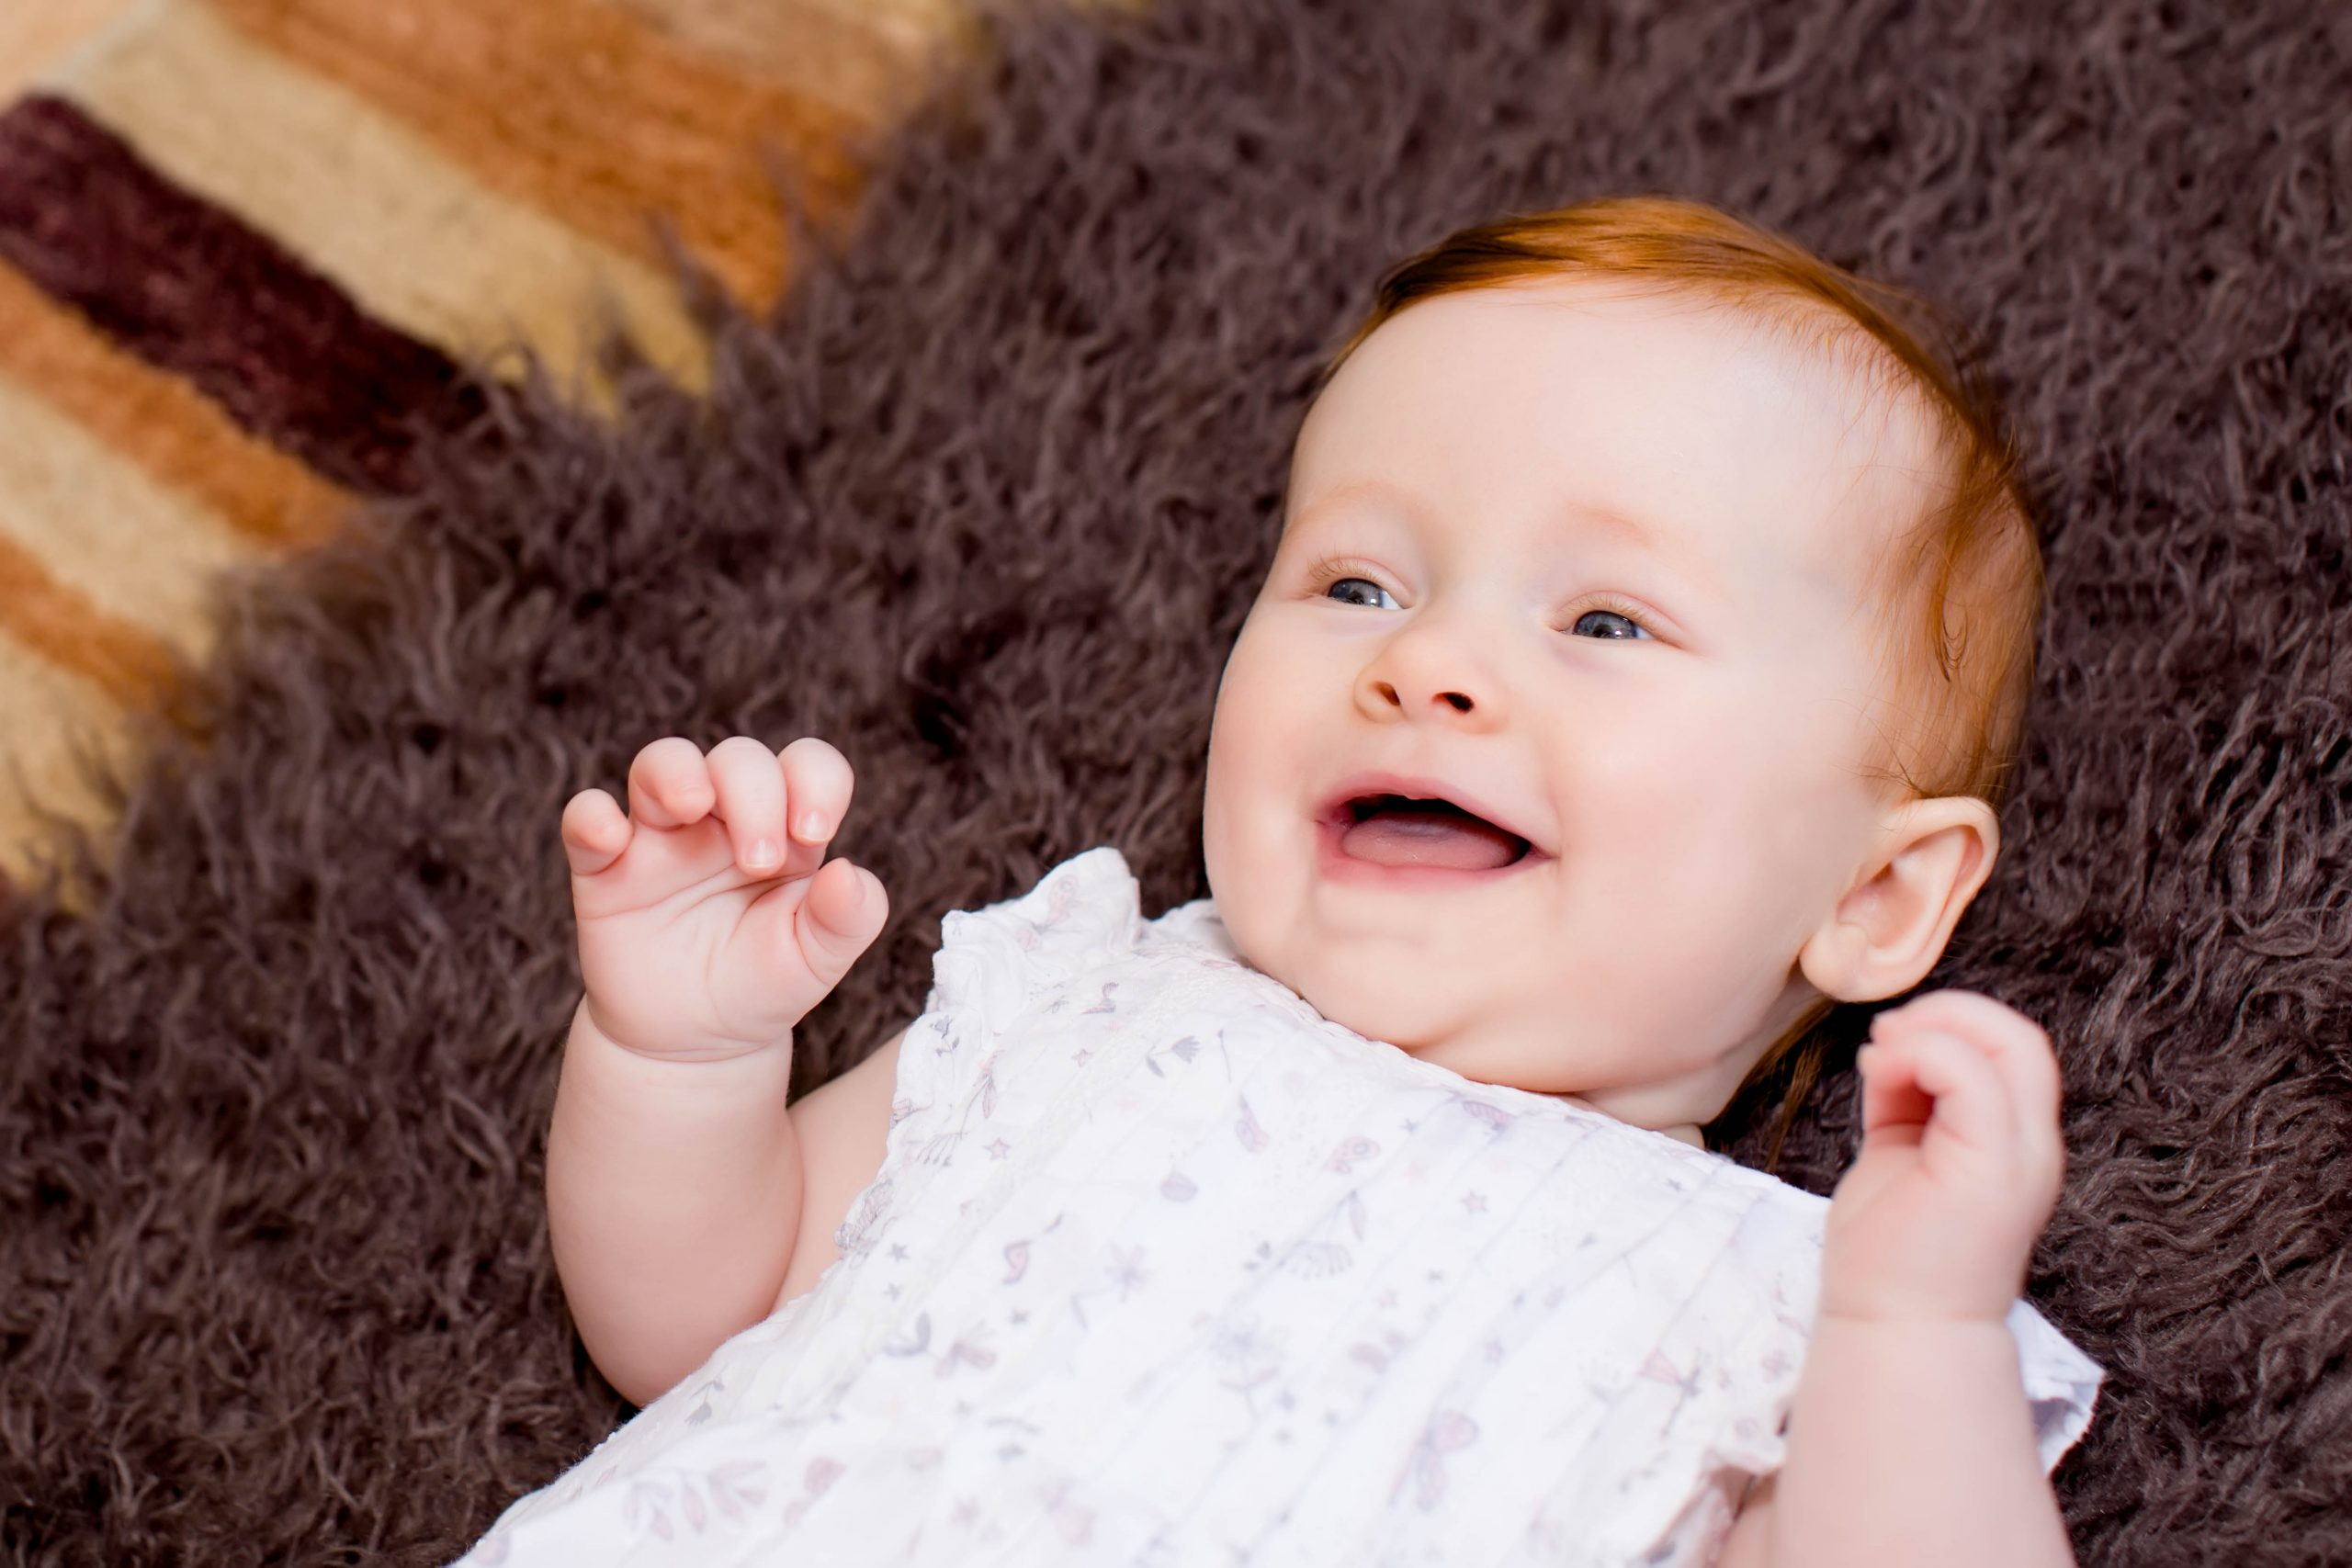 laughing baby on furry rug